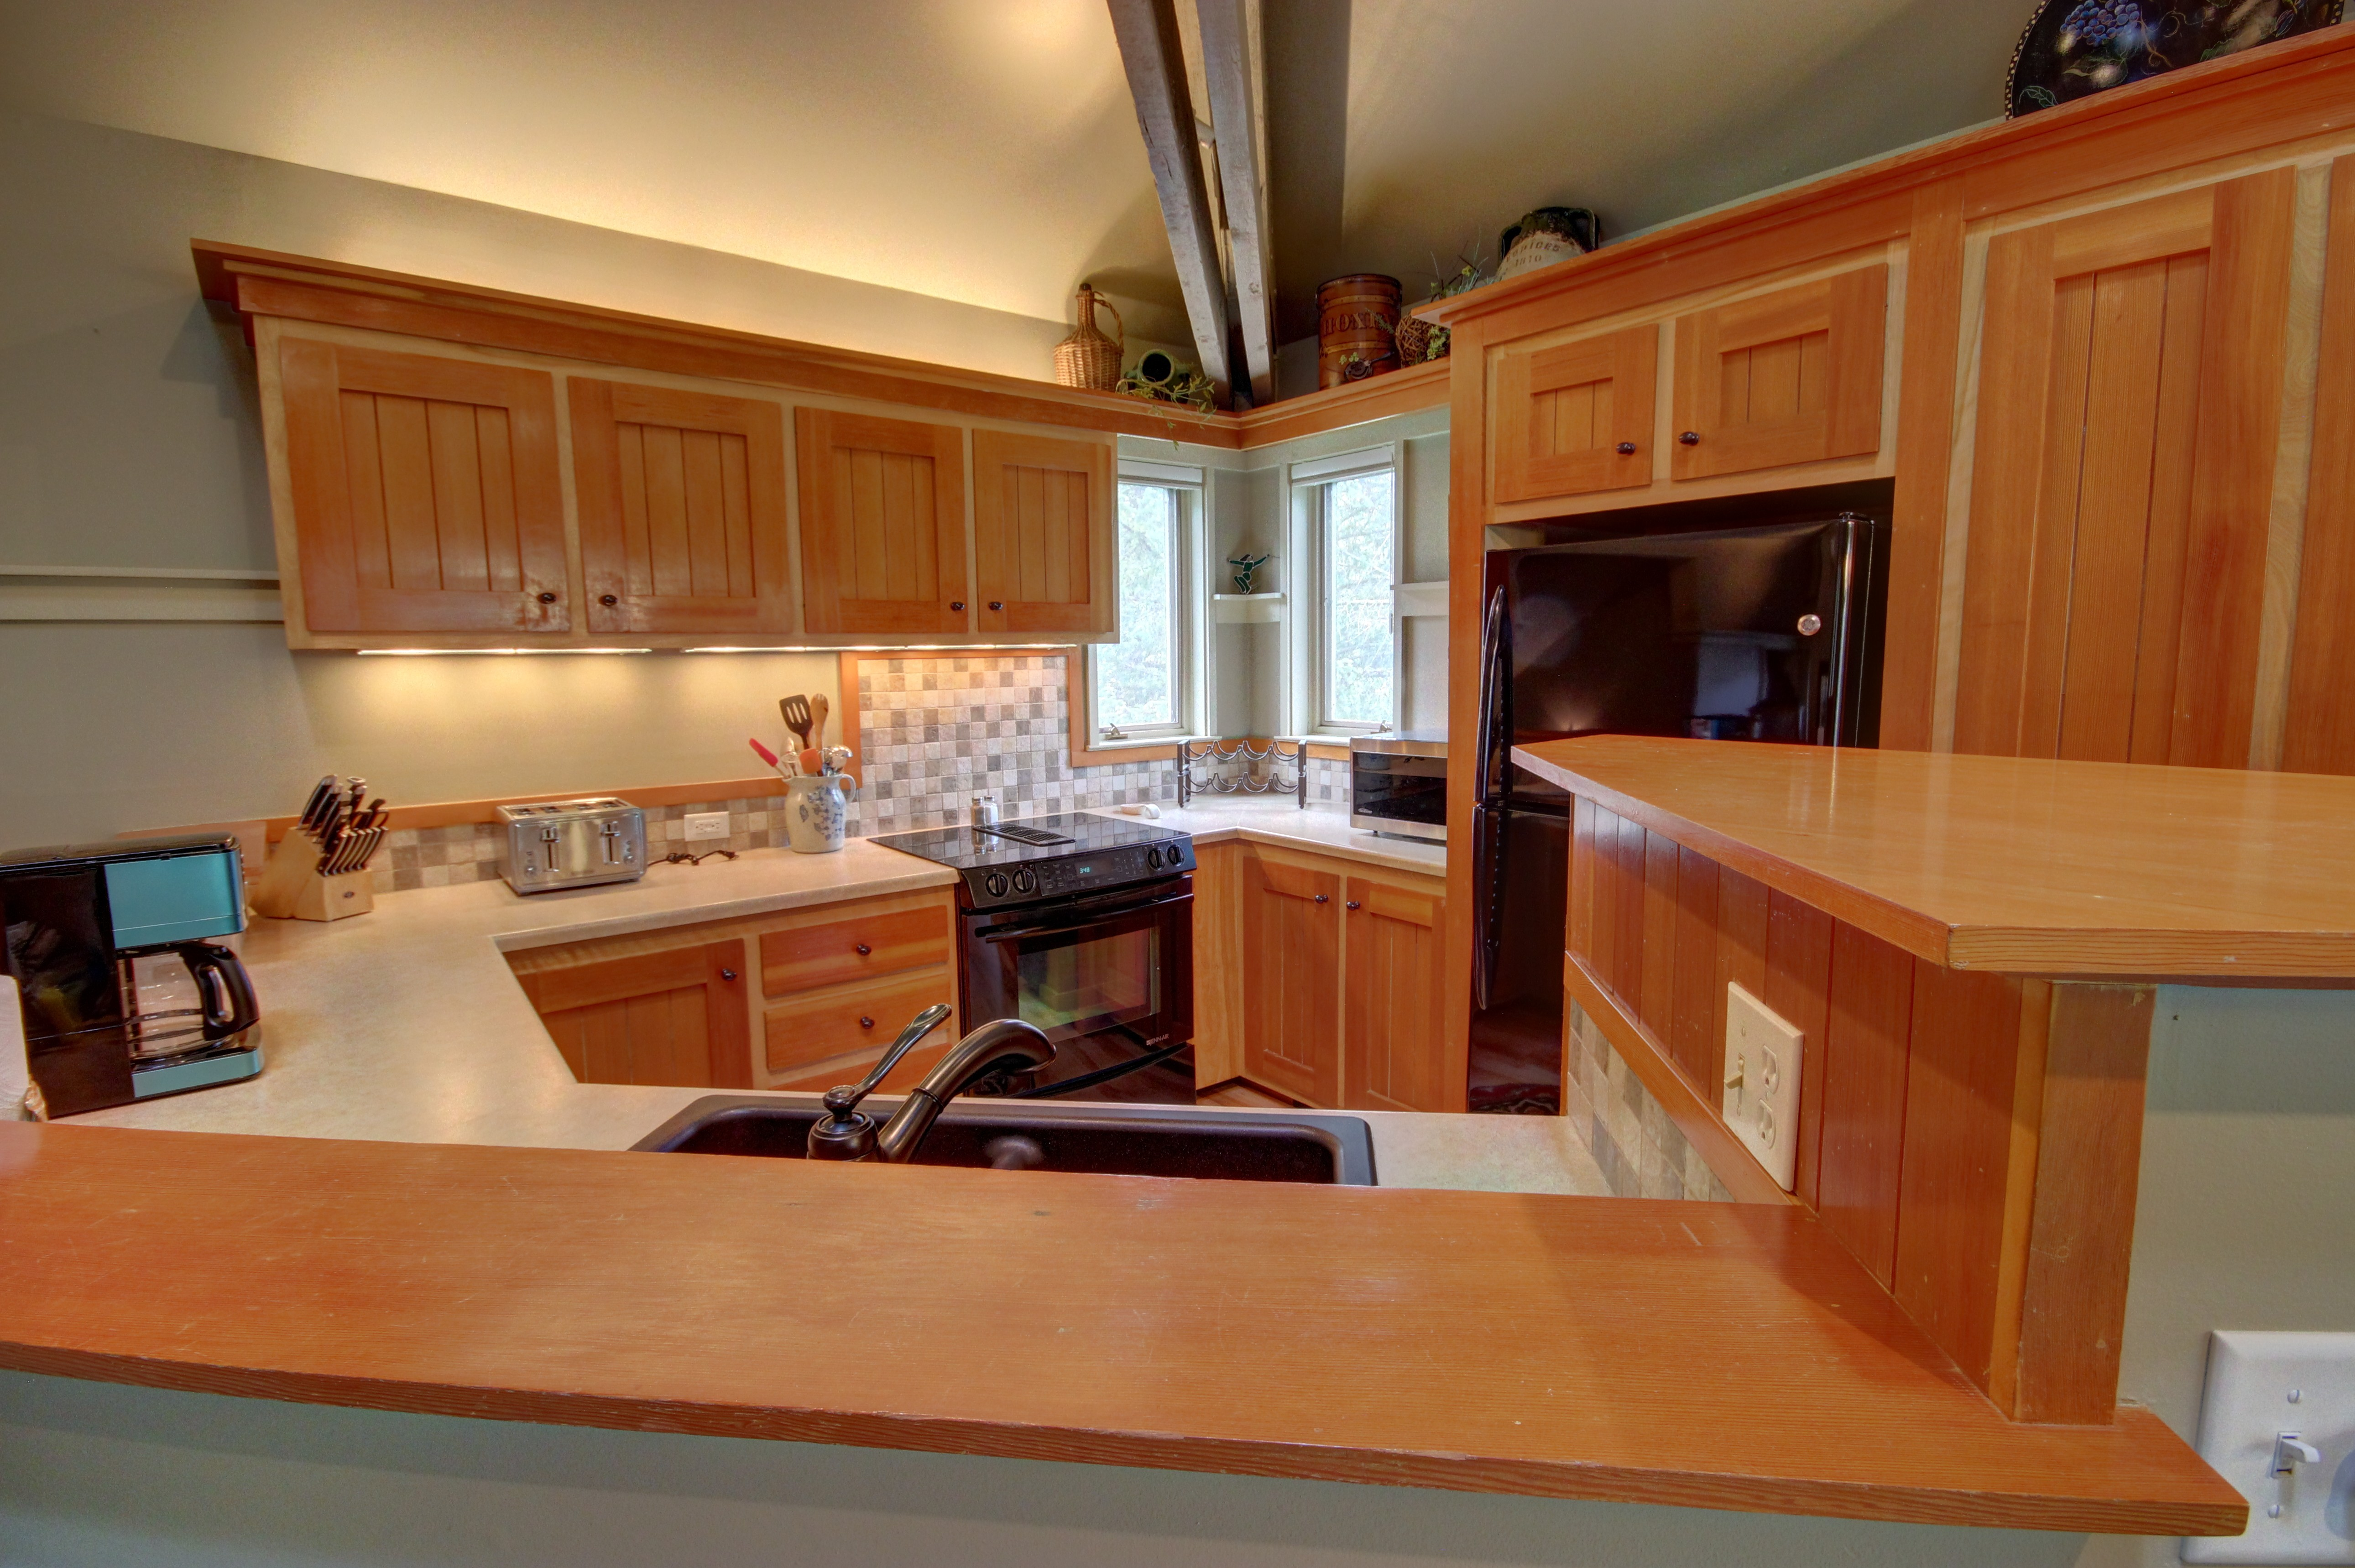 Kitchen with room to cook and places to put appliances